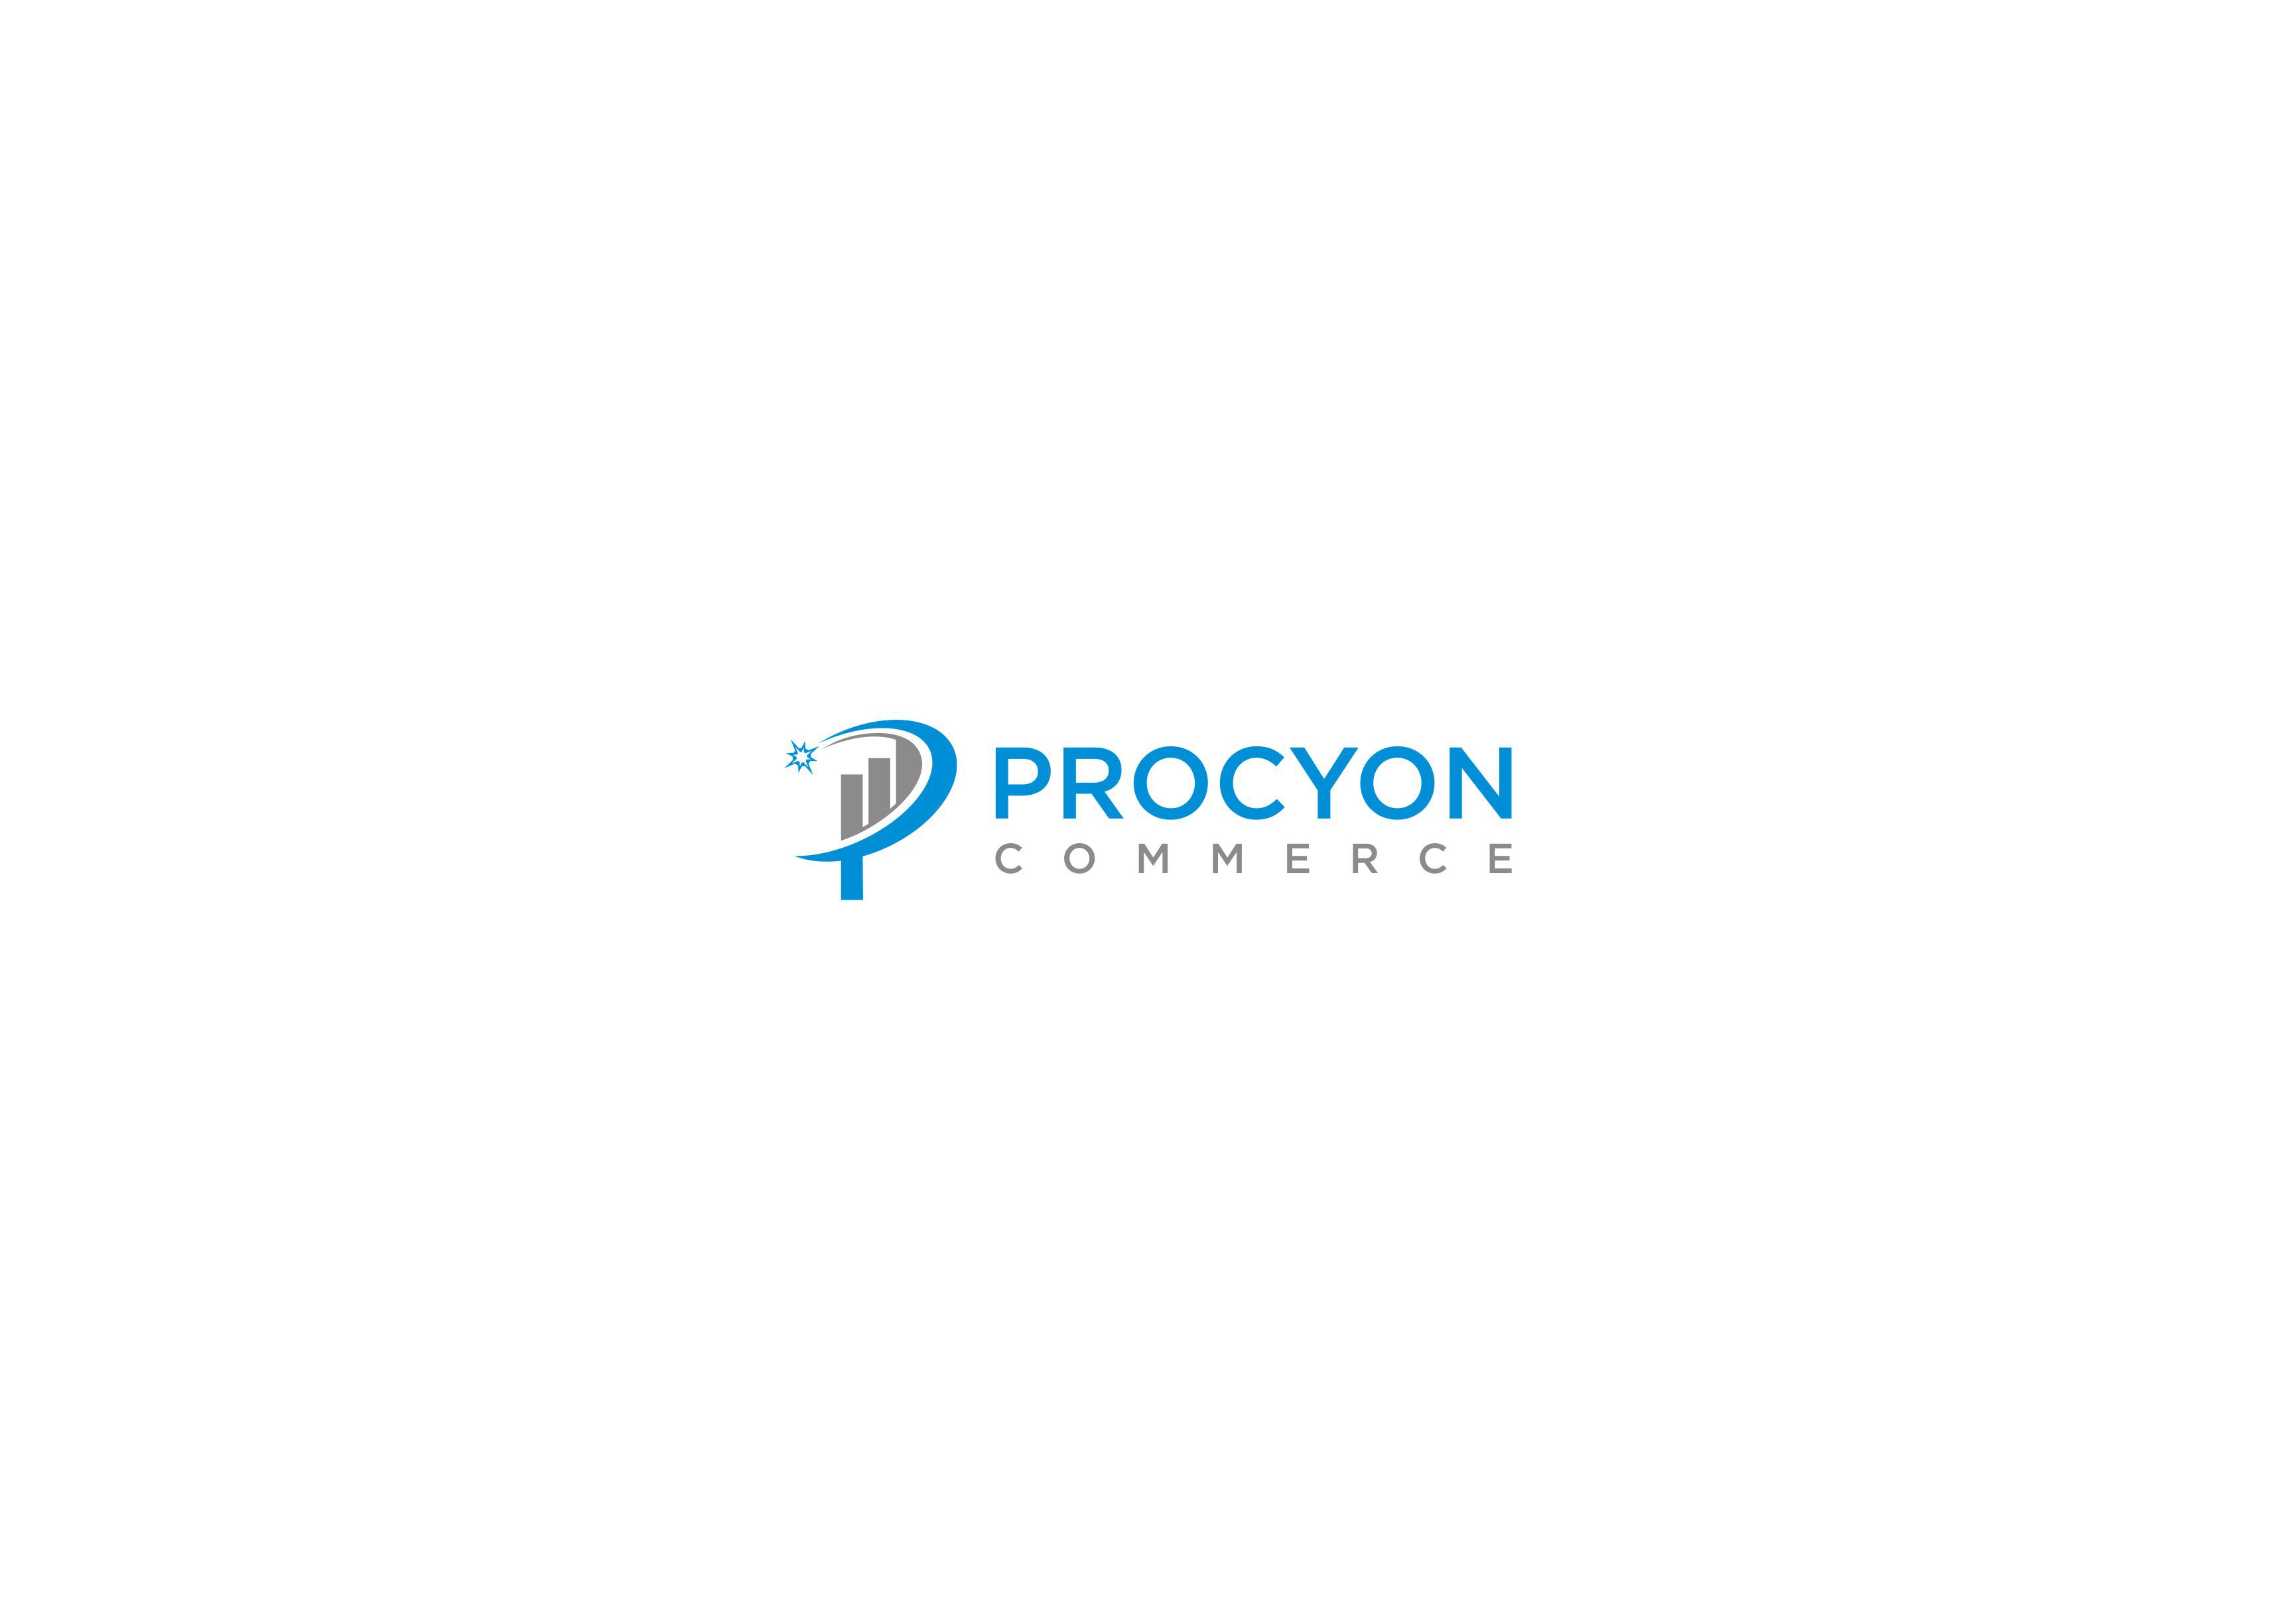 create a breakthrough logo for ProcyonCommerce